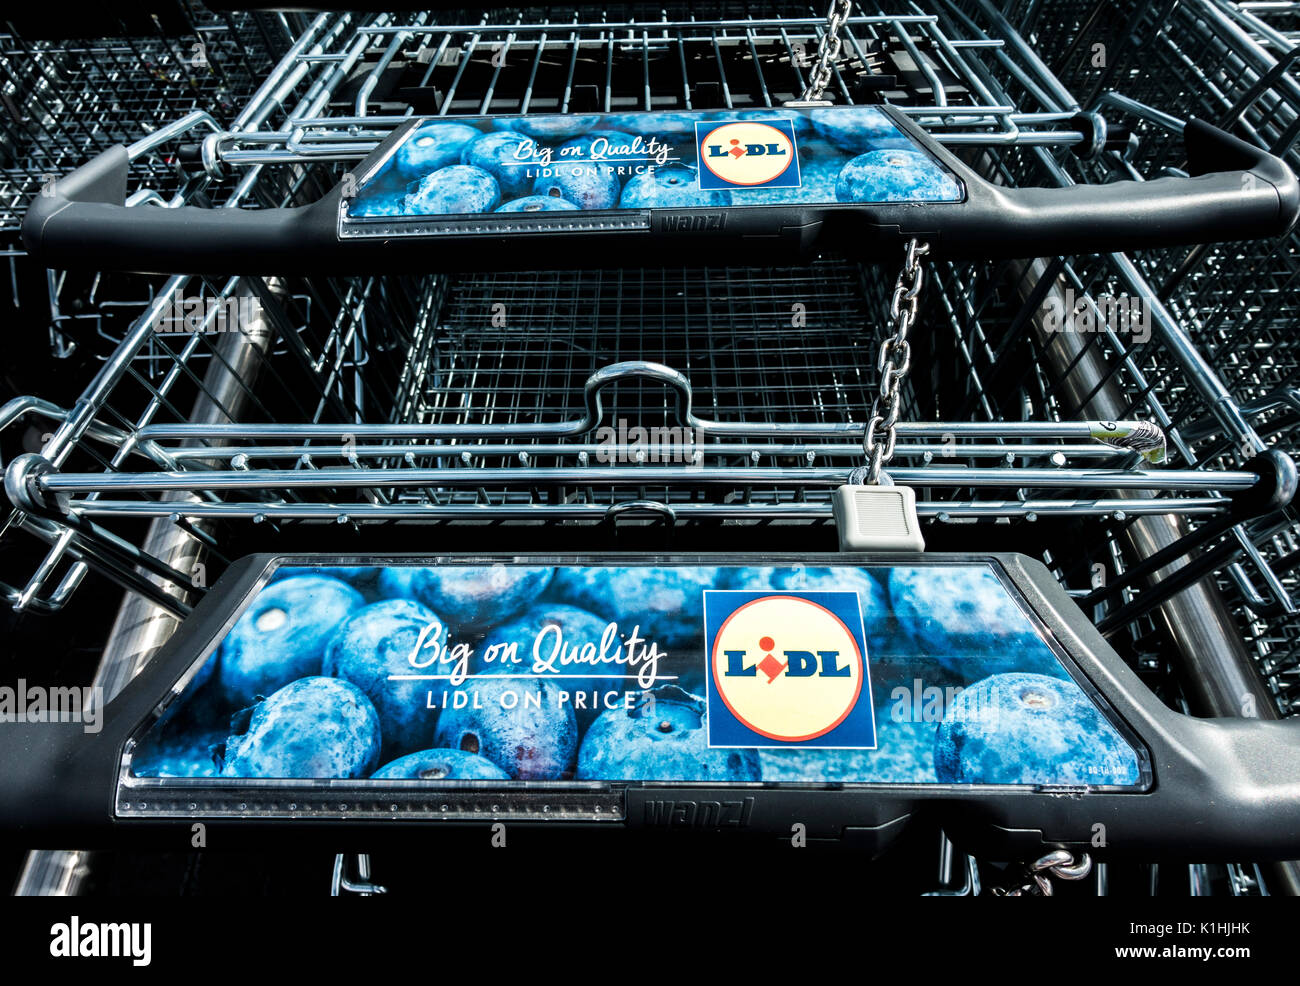 Chained and locked shopping trolleys at Lidl supermarket, Bourne, Lincolnshire, England, UK. - Stock Image